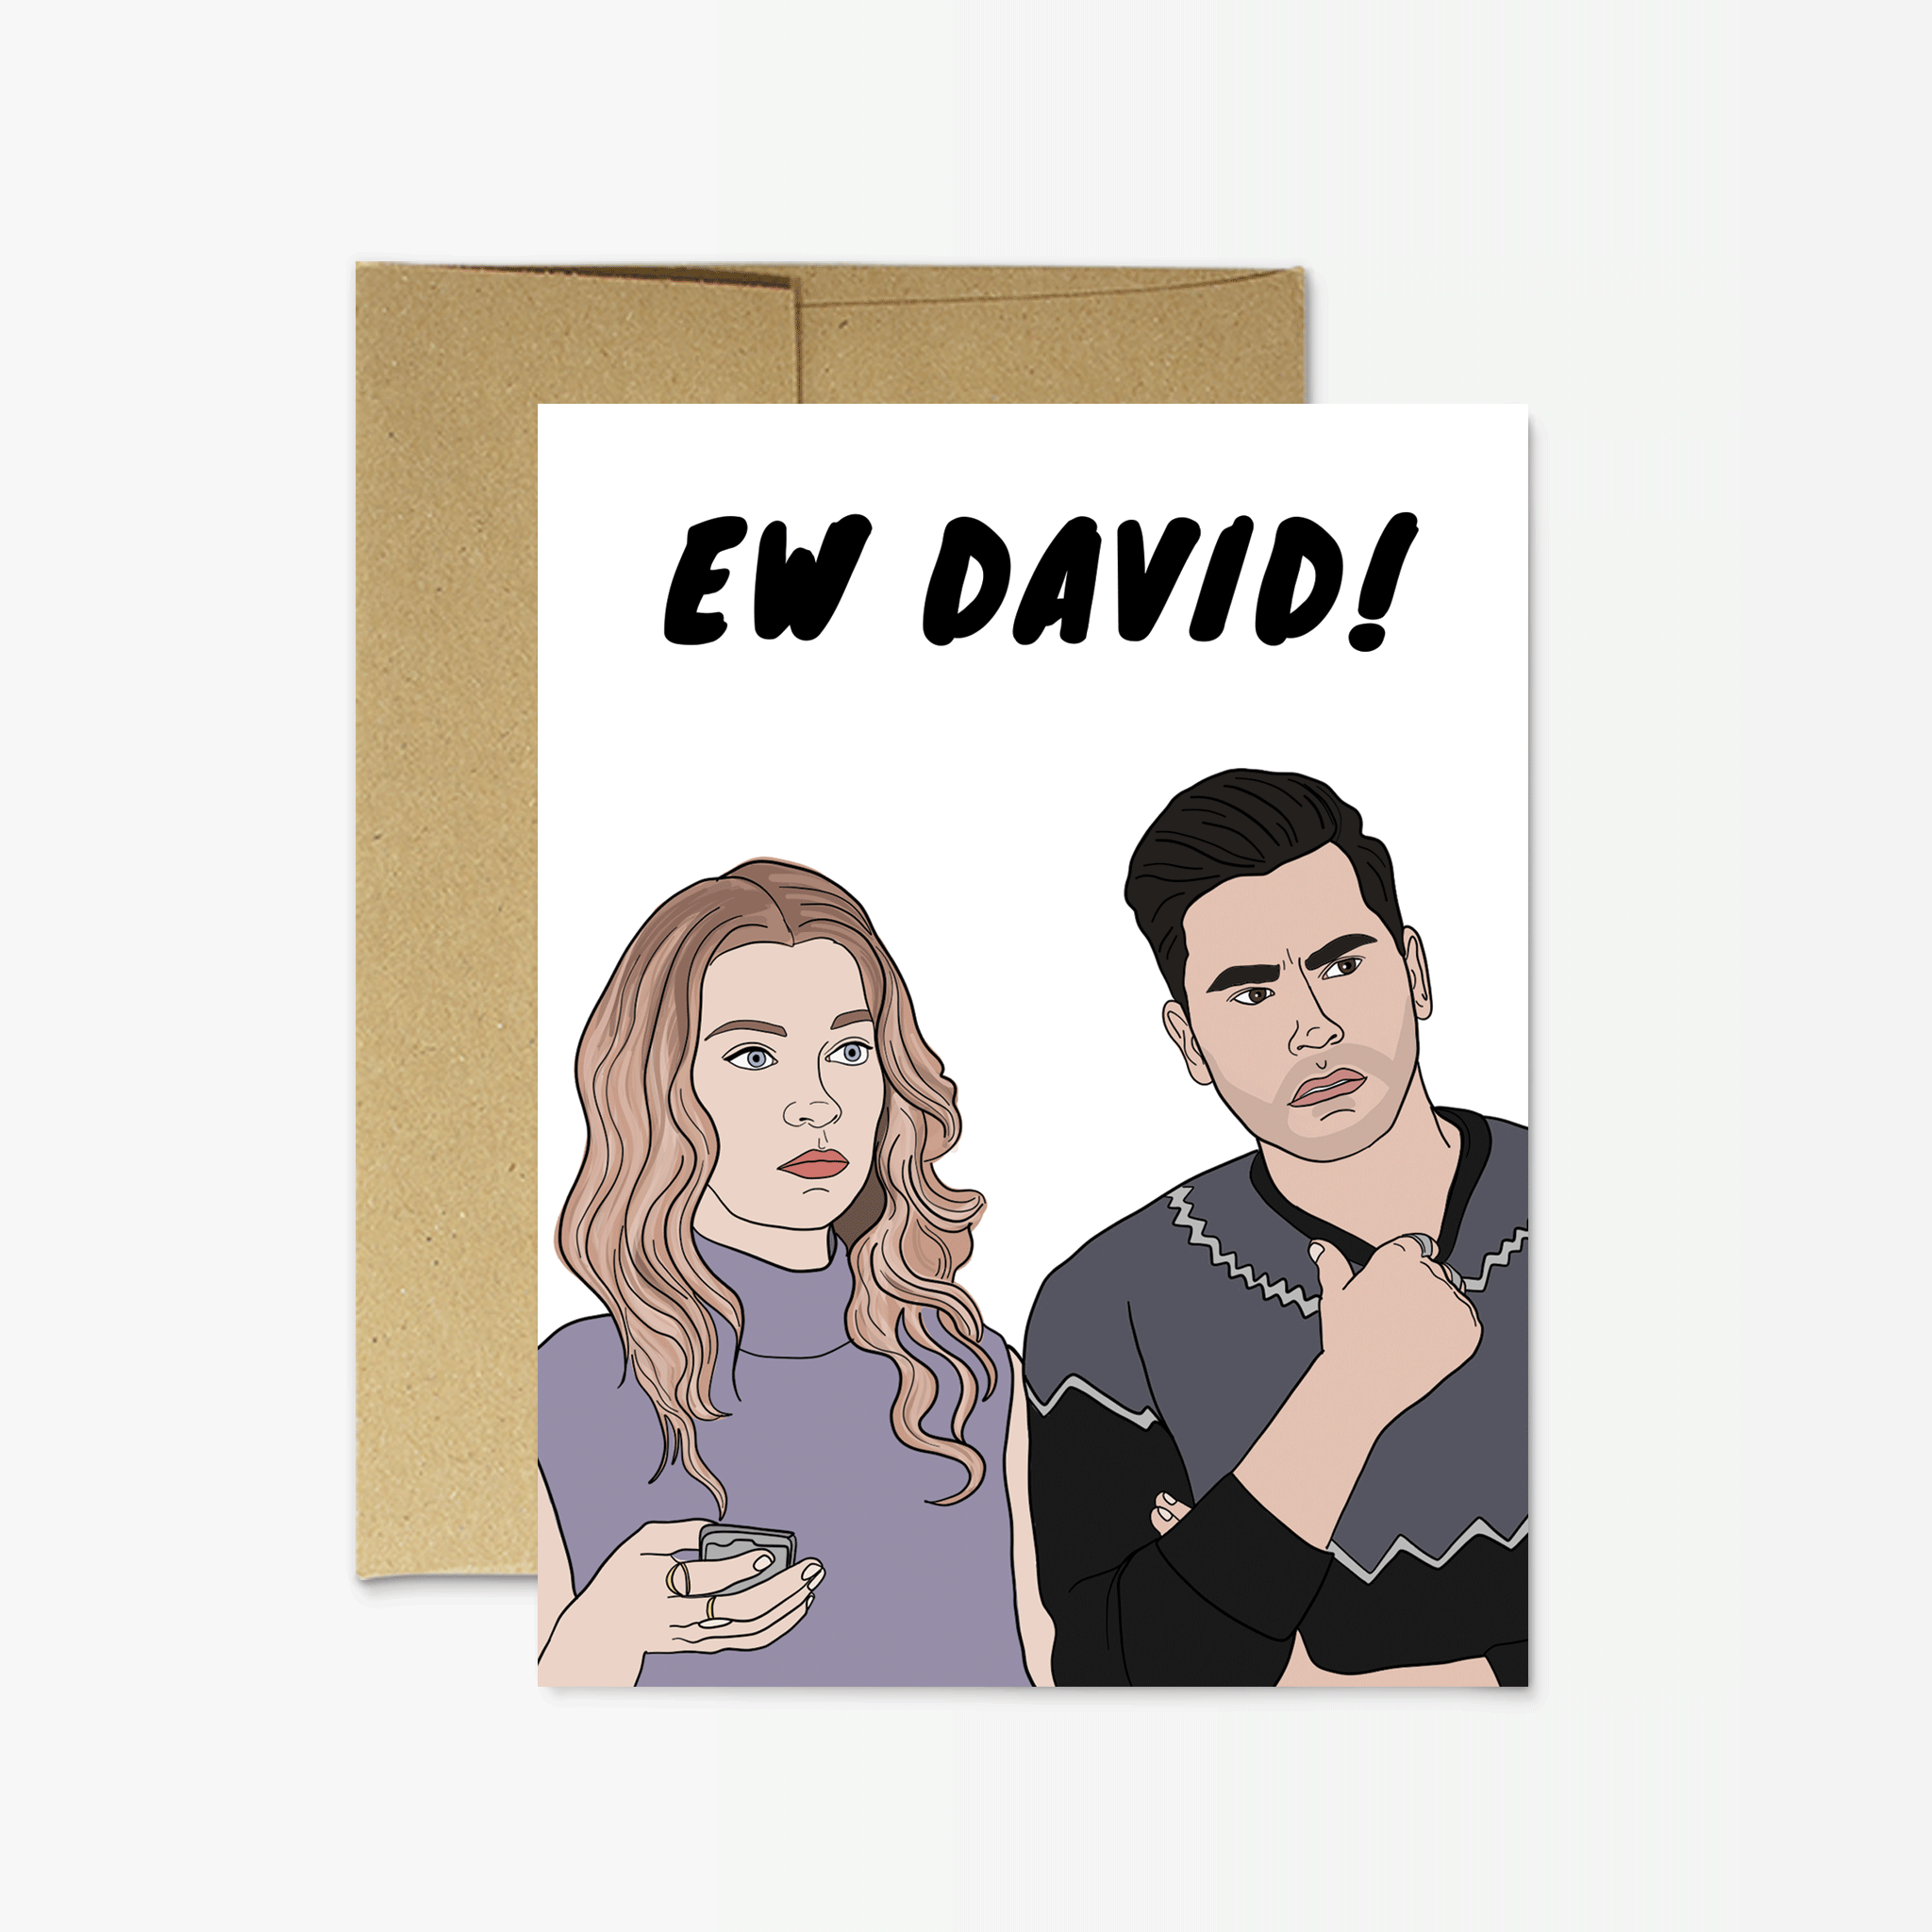 Party Mountain Paper Schitt's Creek Ew David! Funny Greeting Card